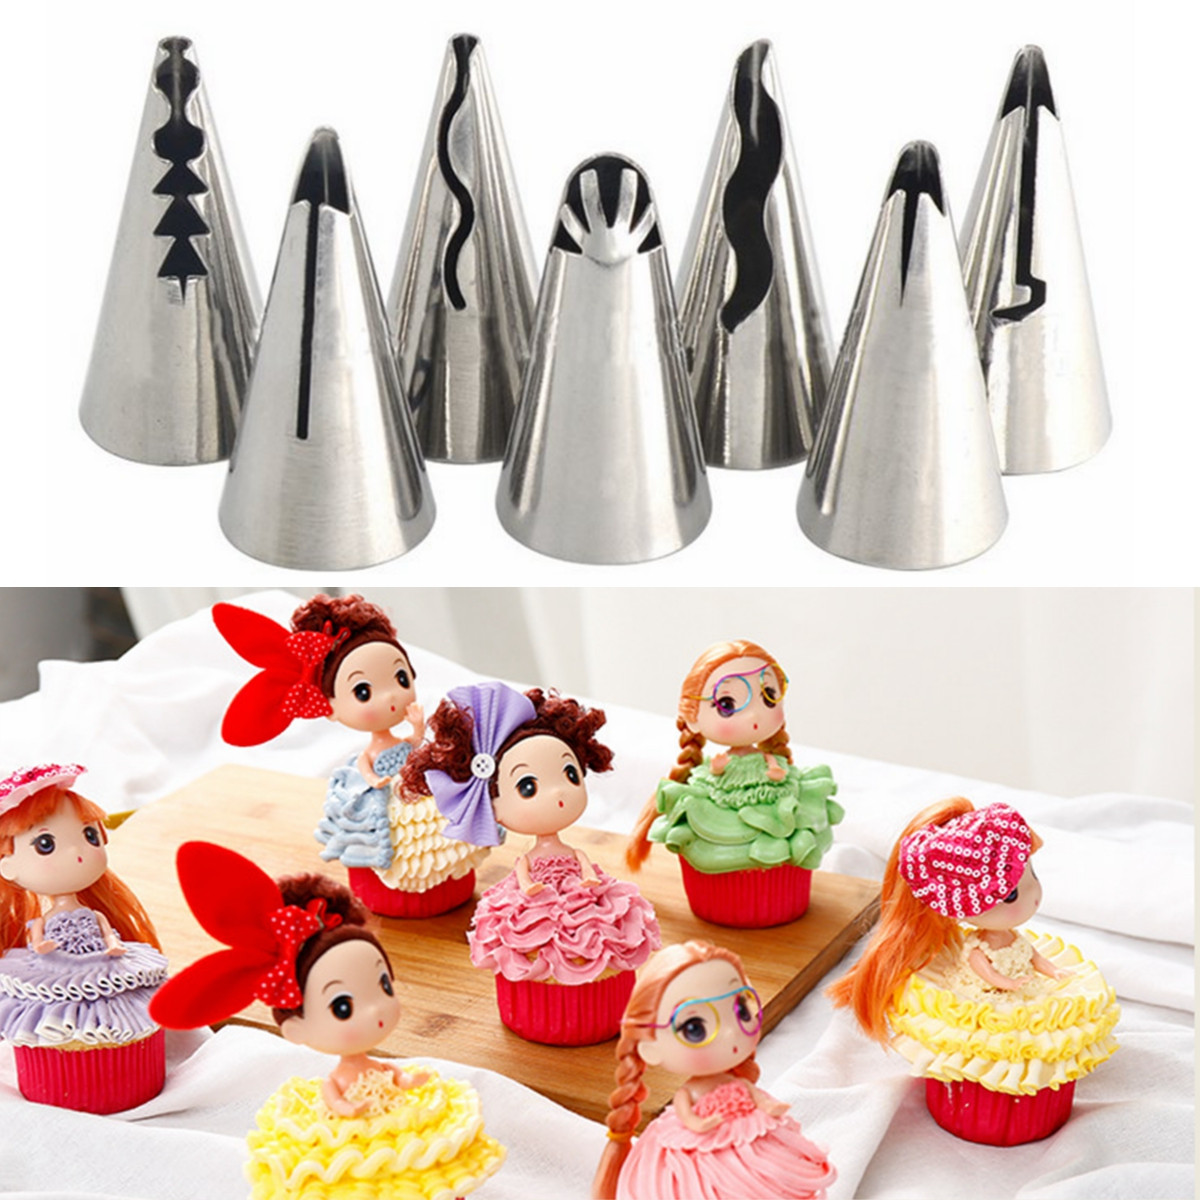 7Pcs DIY Pastry Fondant Cake Icing Piping Nozzles Cake Biscuits Decorating Tips Baking Tool